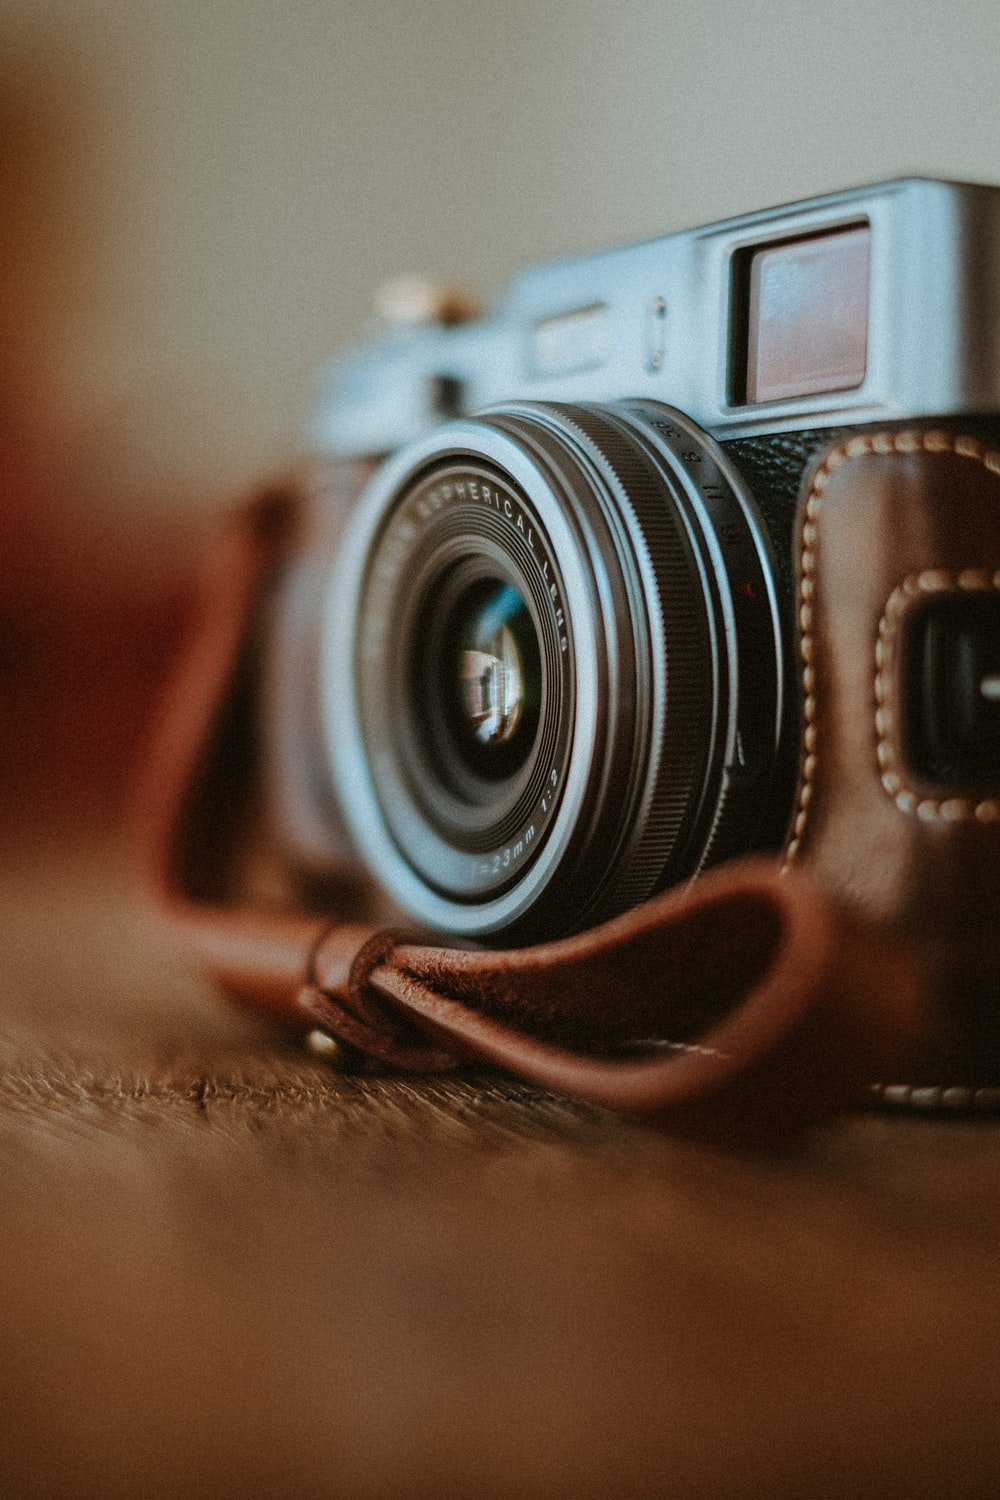 black and silver camera lens on brown leather strap